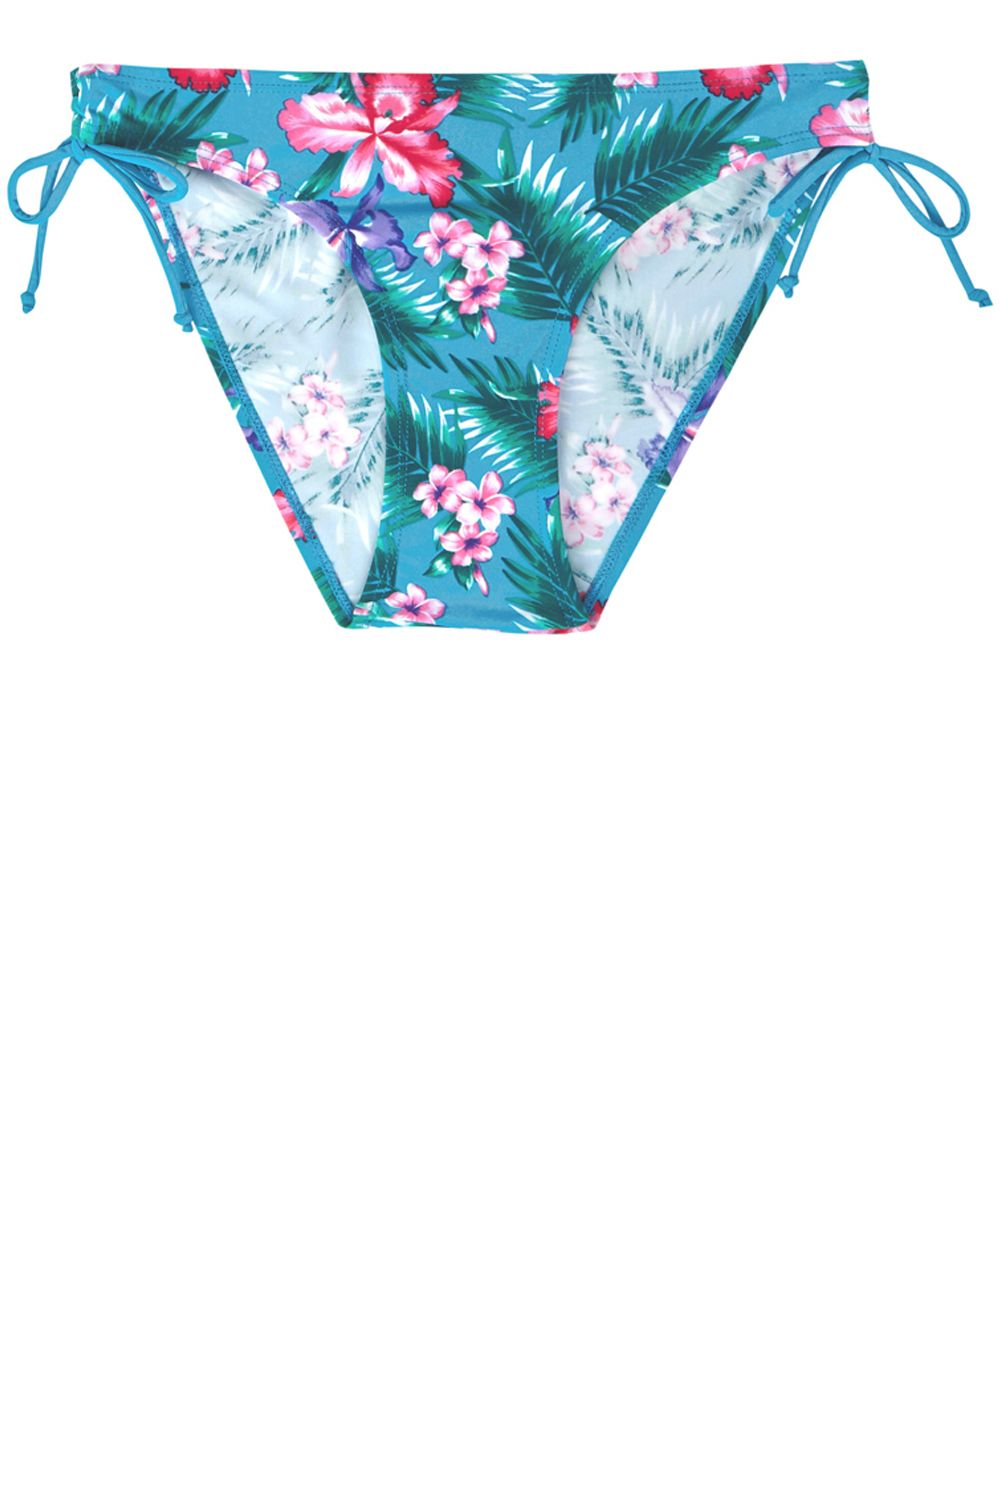 Tropical fern print bikini bottoms